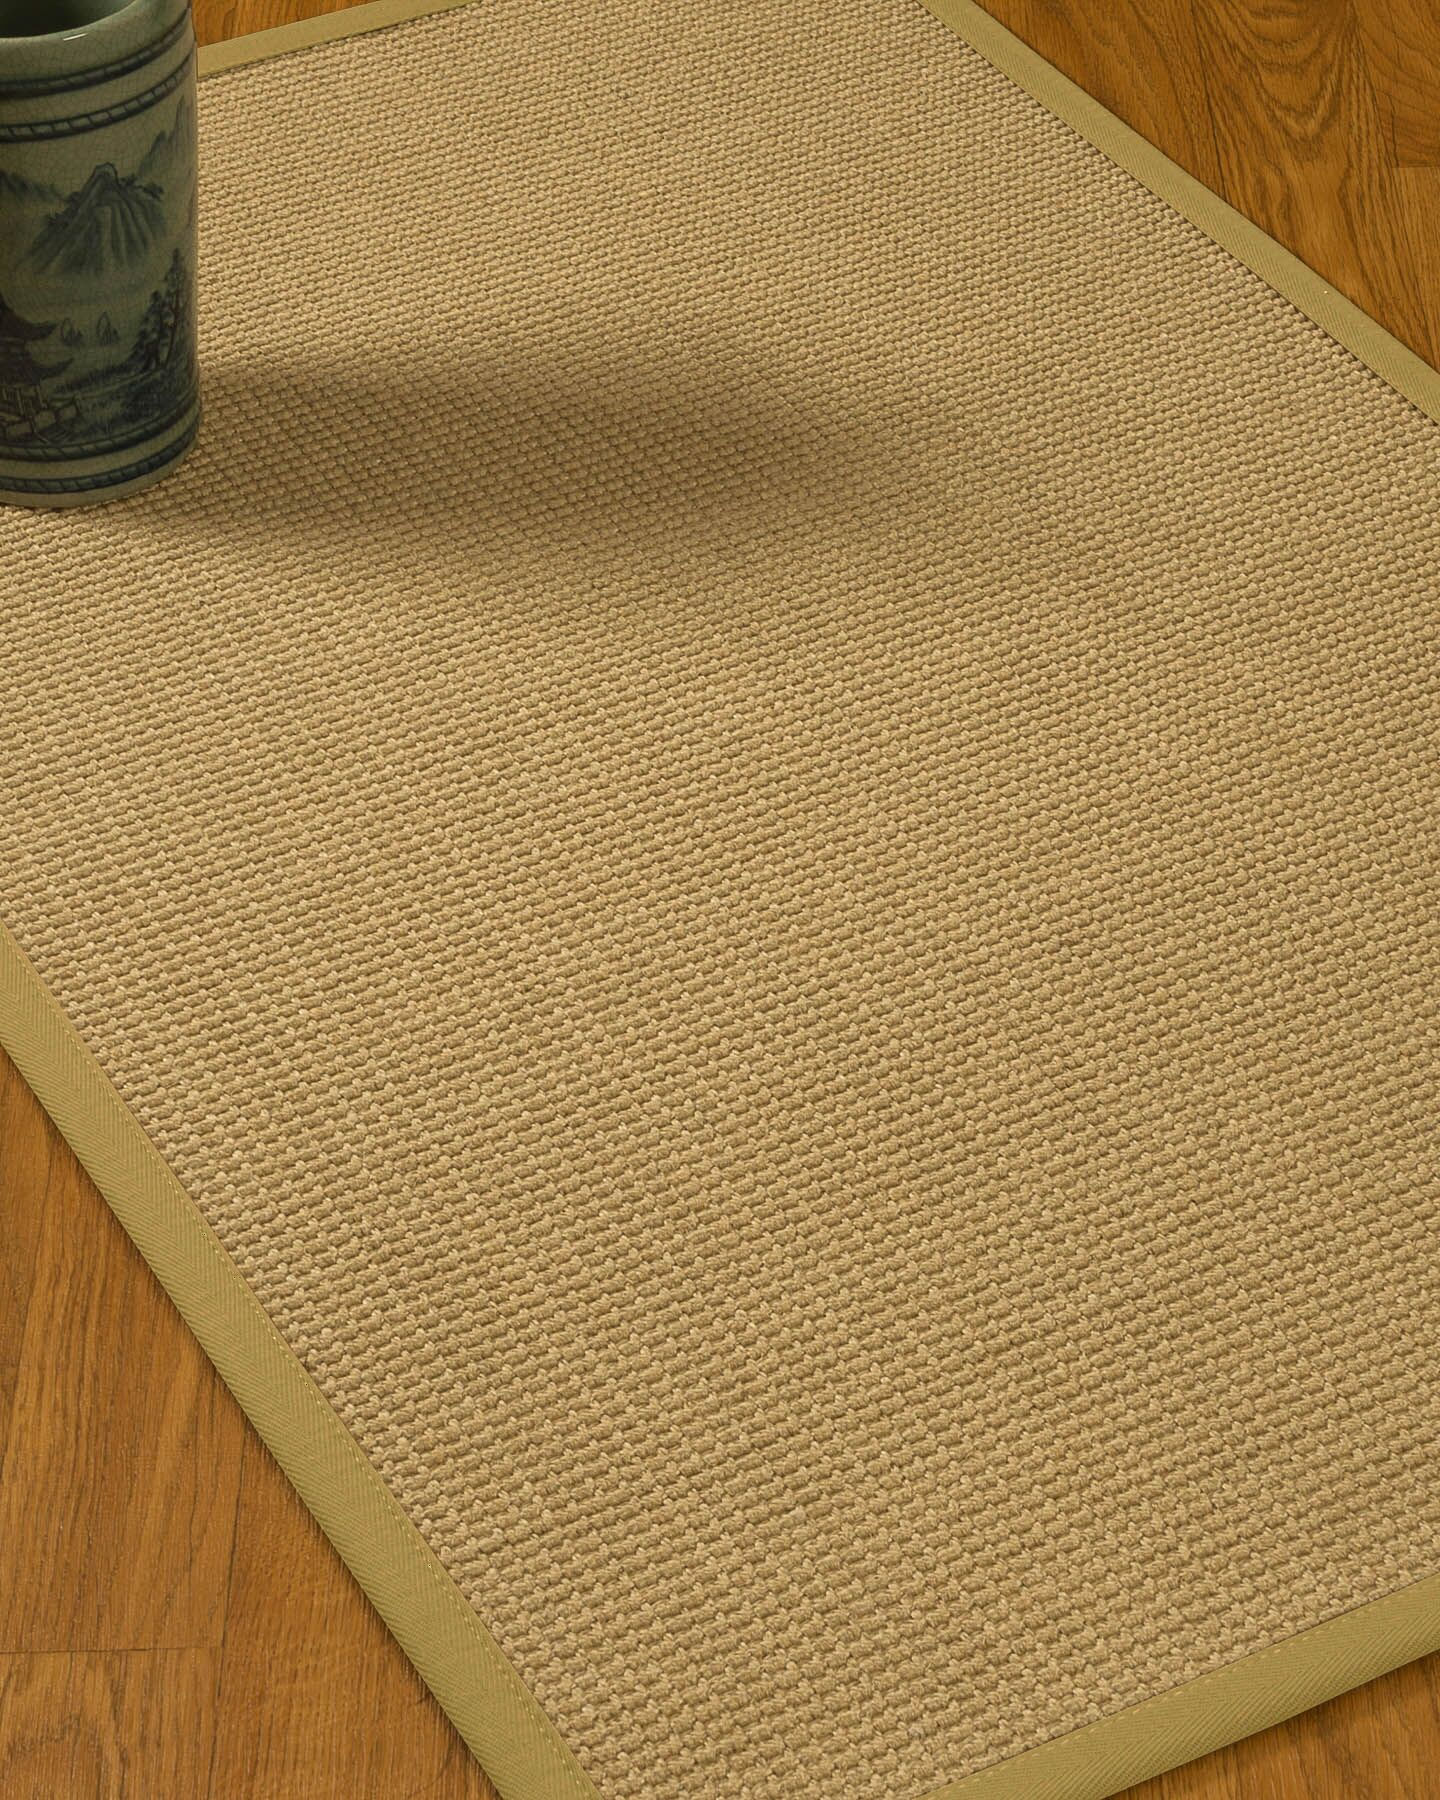 Jacobs Border Hand-Woven Beige/Khaki Area Rug Rug Pad Included: No, Rug Size: Rectangle 3' x 5'